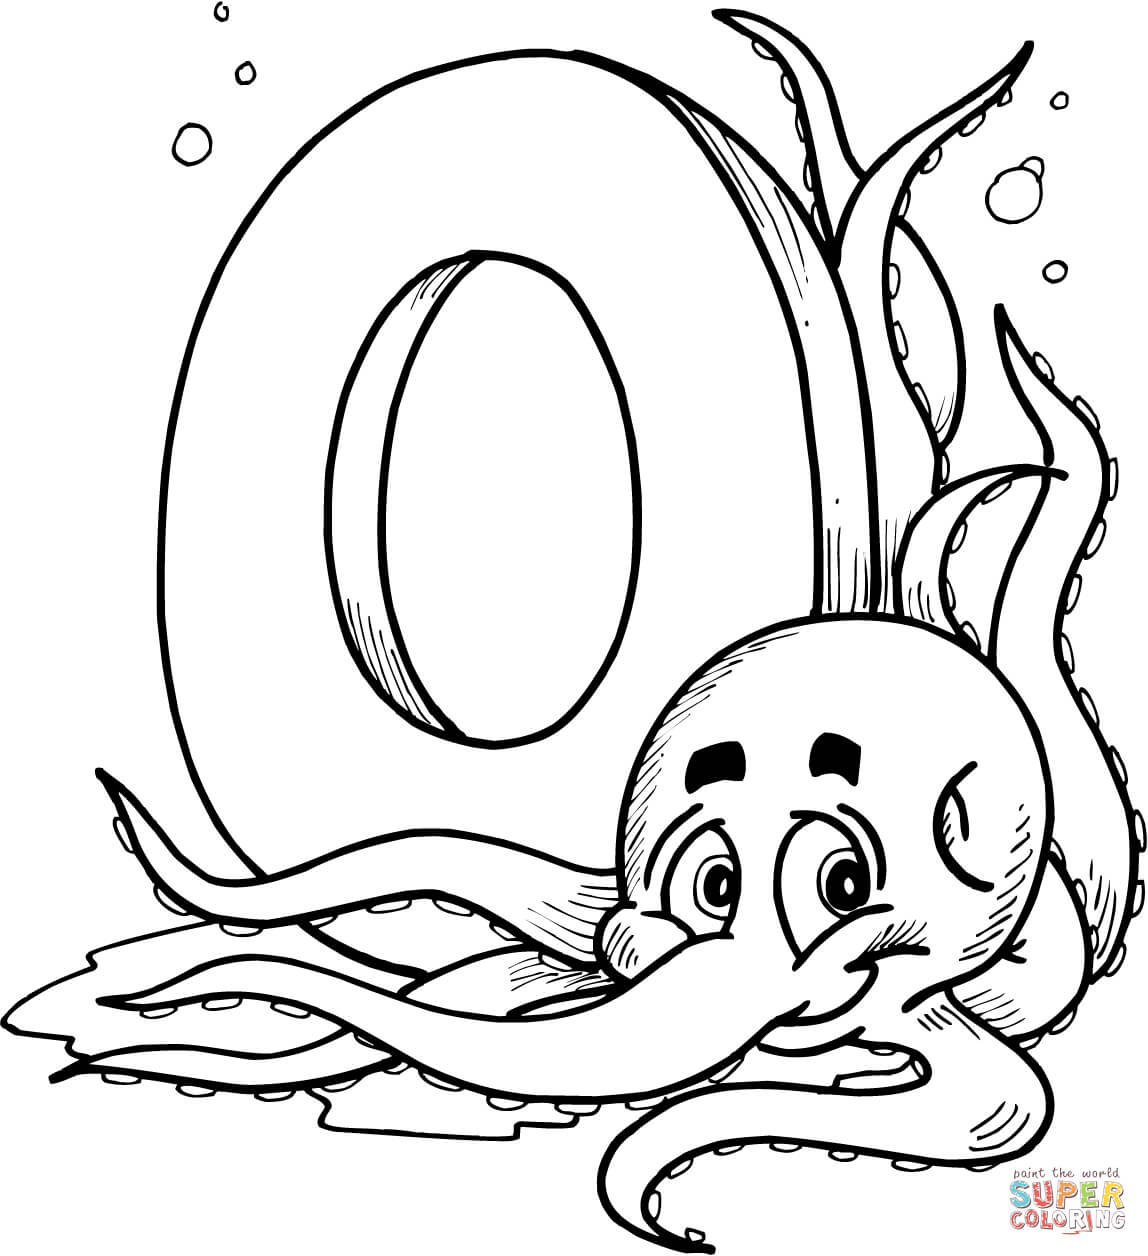 octopus-coloring-page-0011-q1